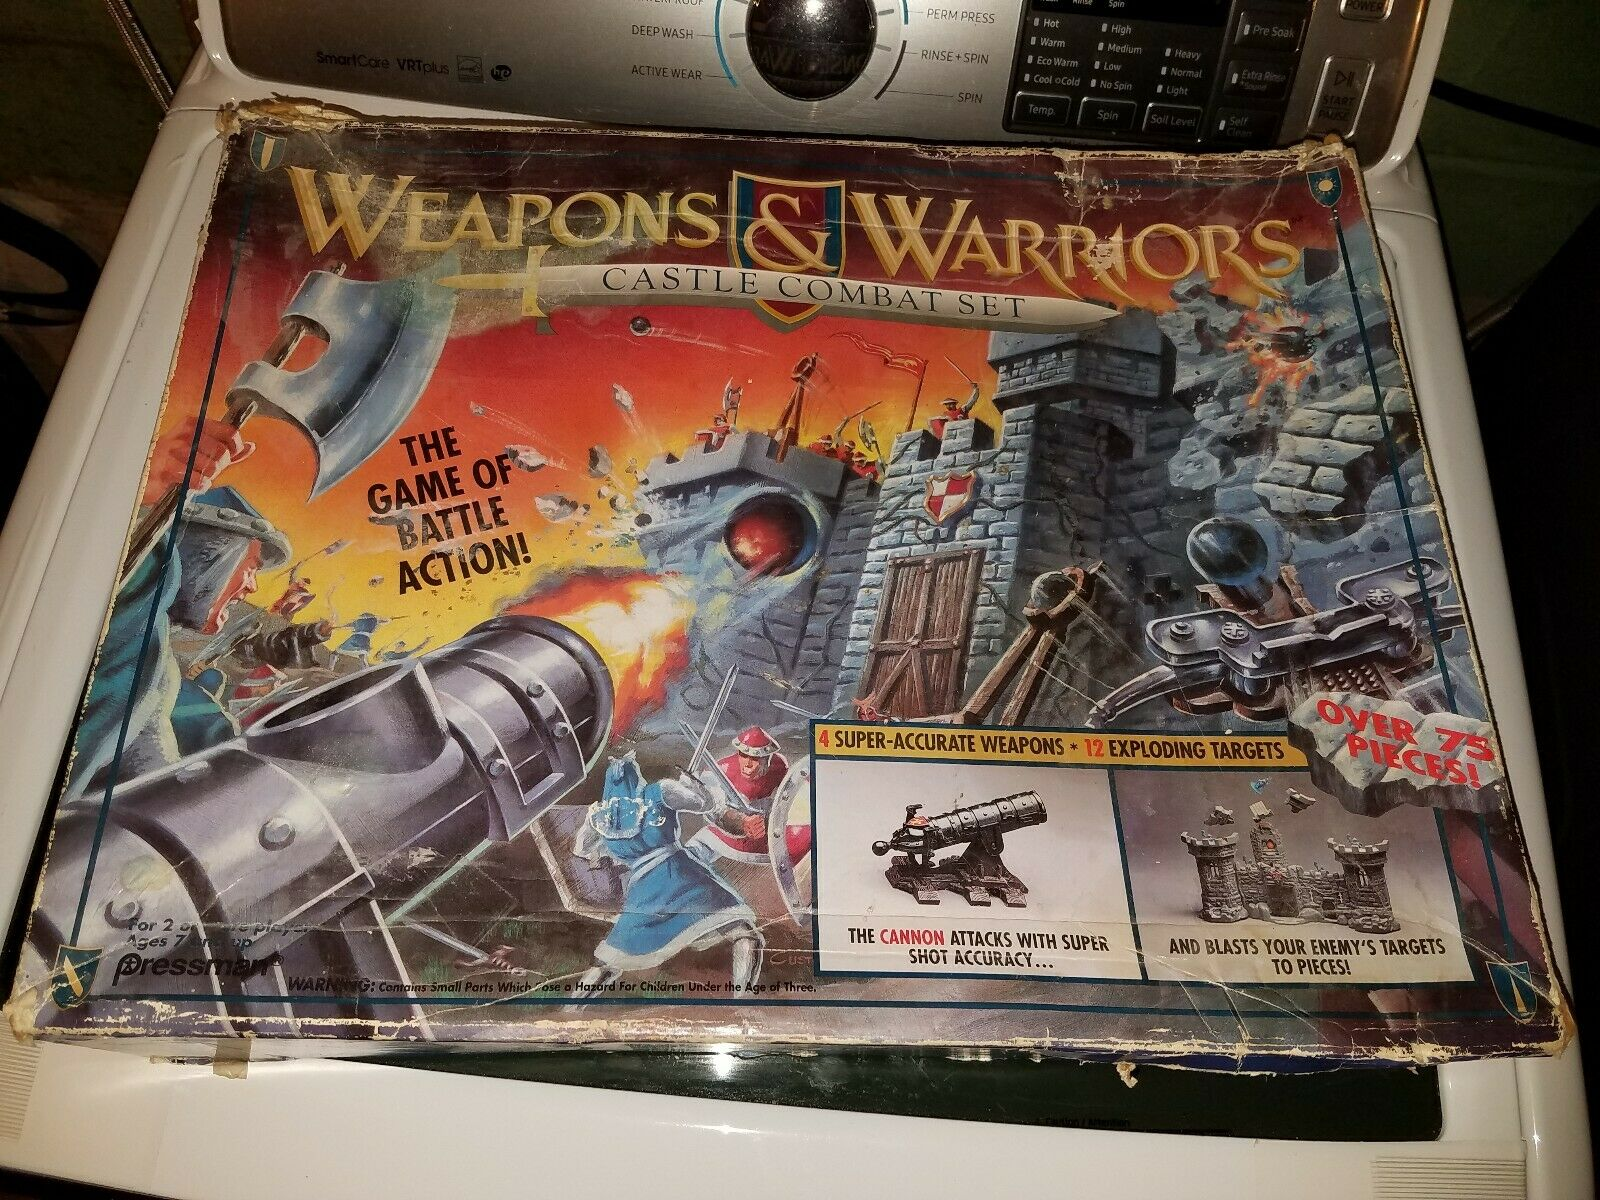 Weapons and Warriors Game (Castle Combat)